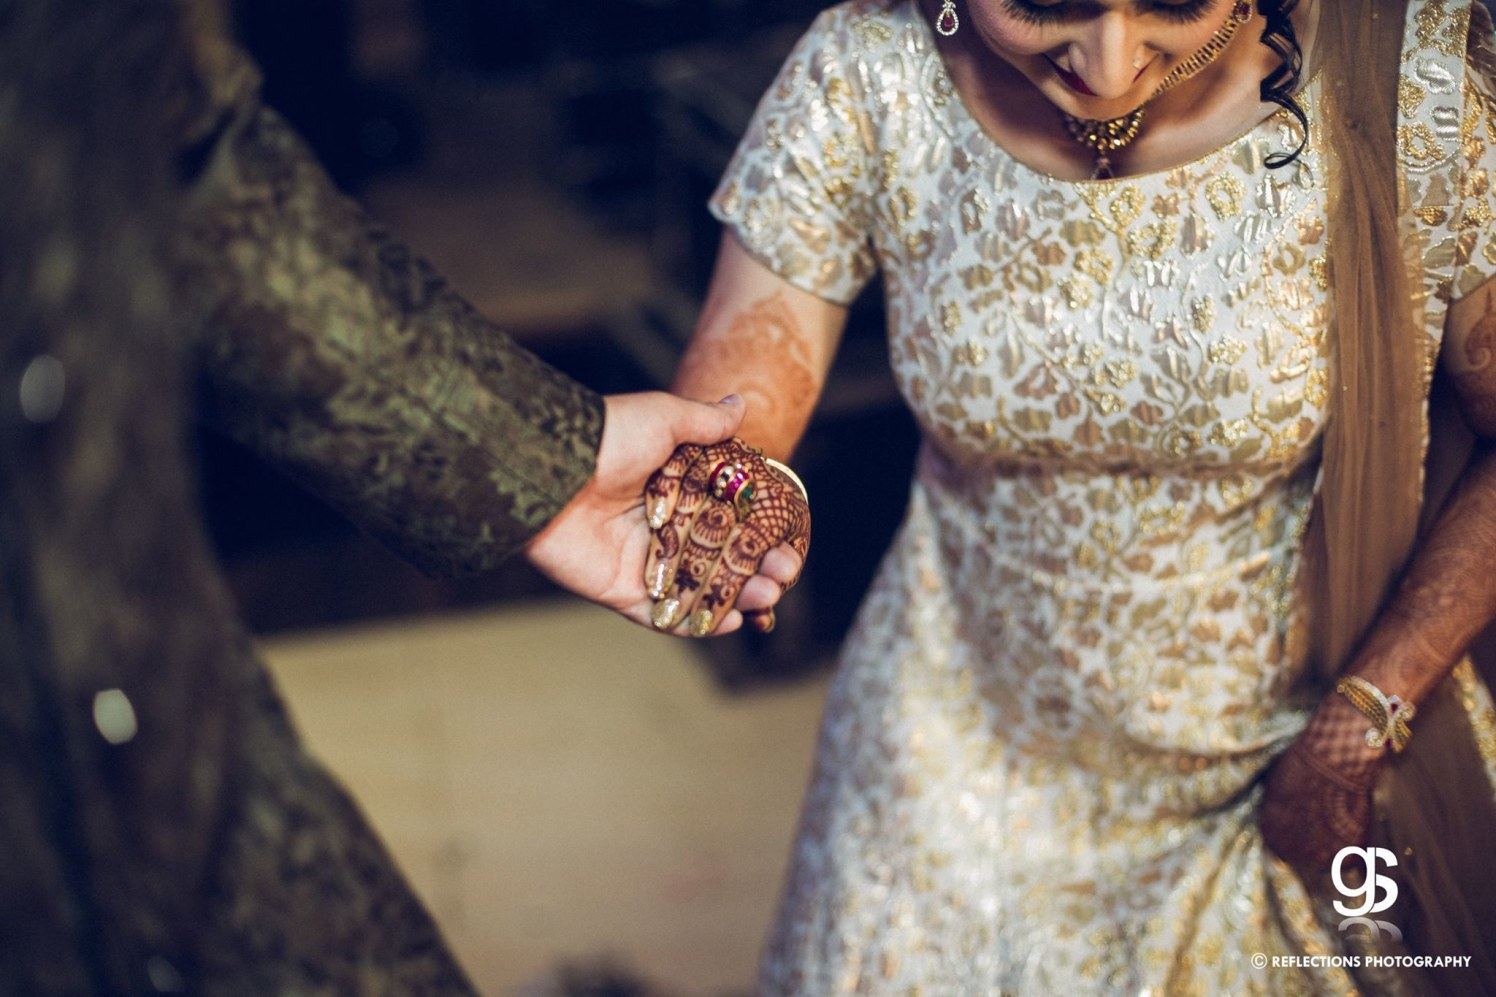 Just hold my hand! by Reflections Photography Wedding-photography | Weddings Photos & Ideas